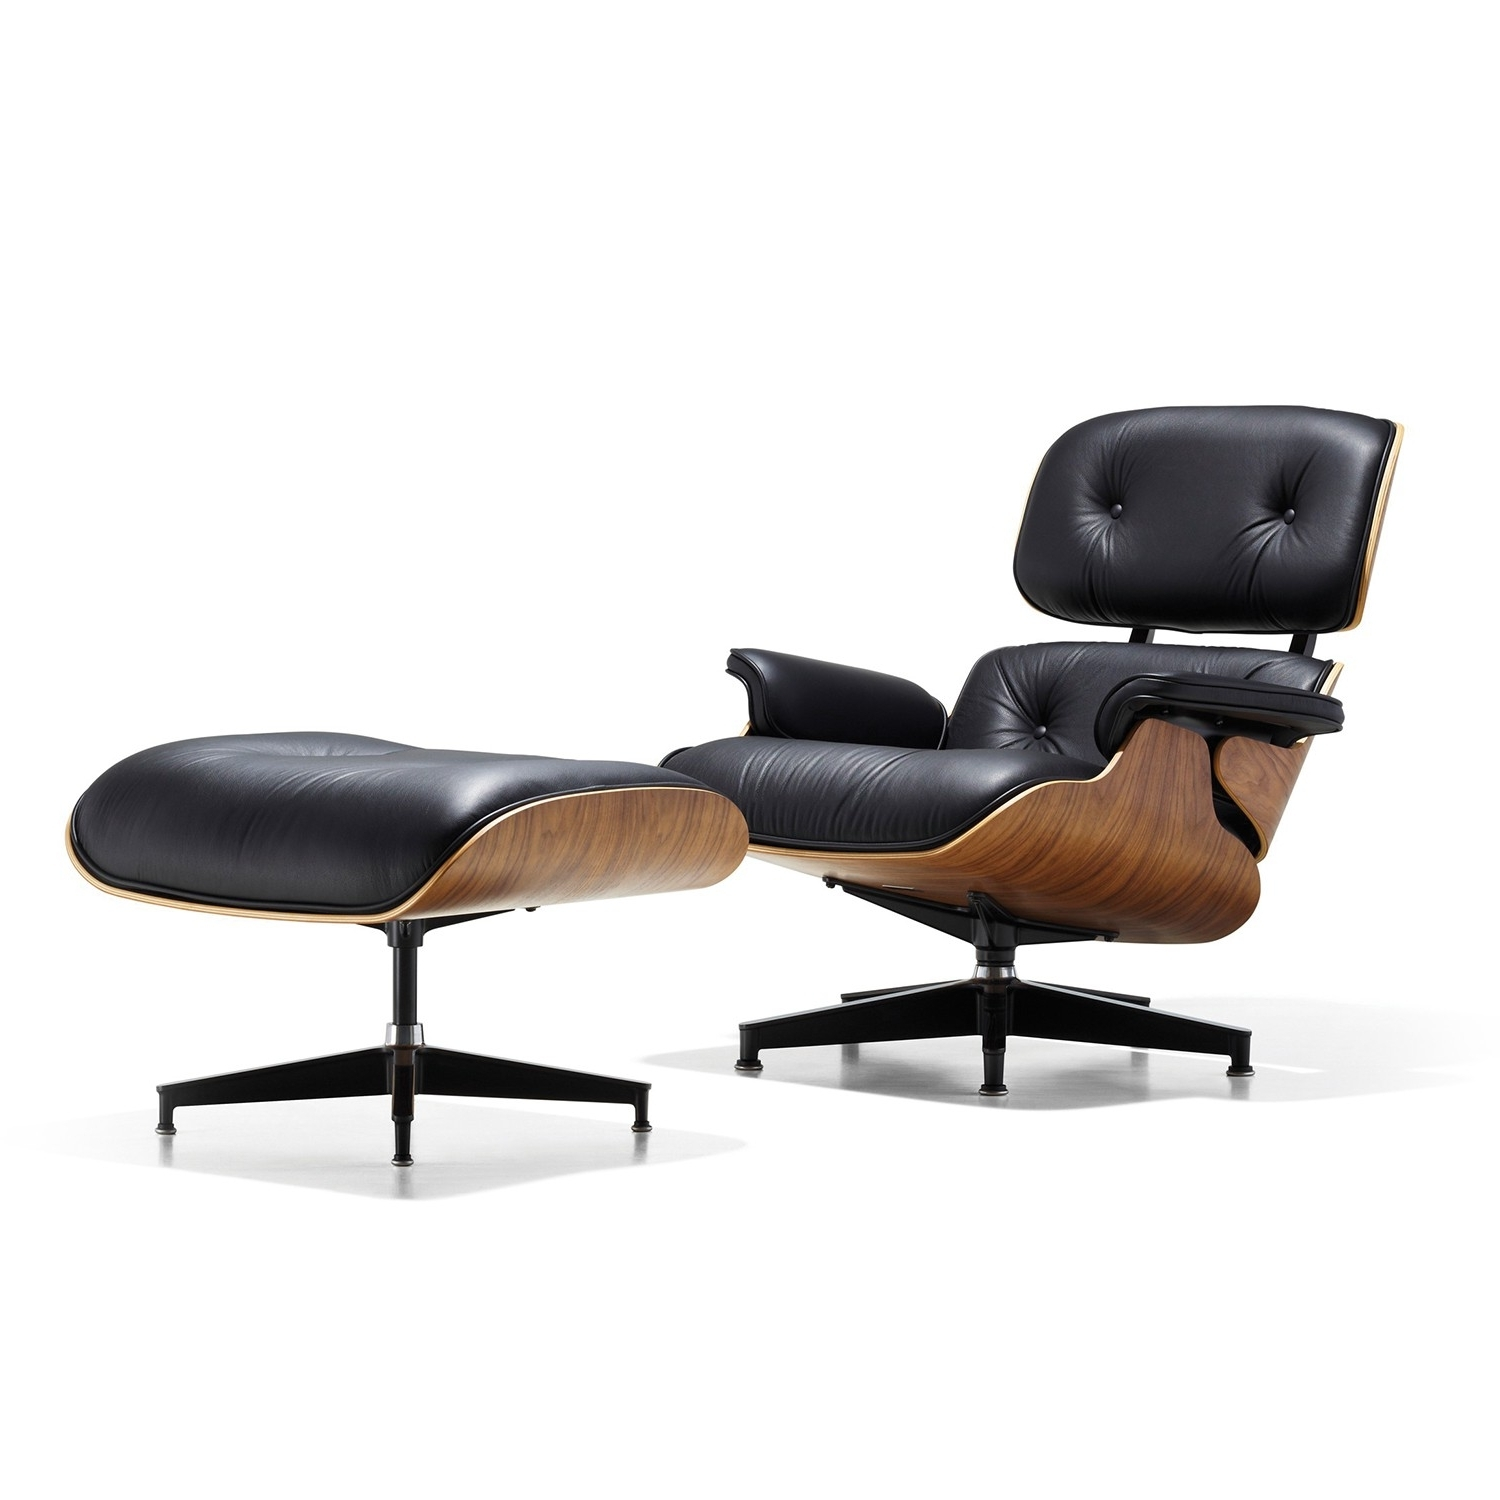 Well Known Ottoman : Herman Miller Lounge Seating Charles Eames Rocking Chair Intended For Rocking Chairs With Footstool (View 17 of 20)